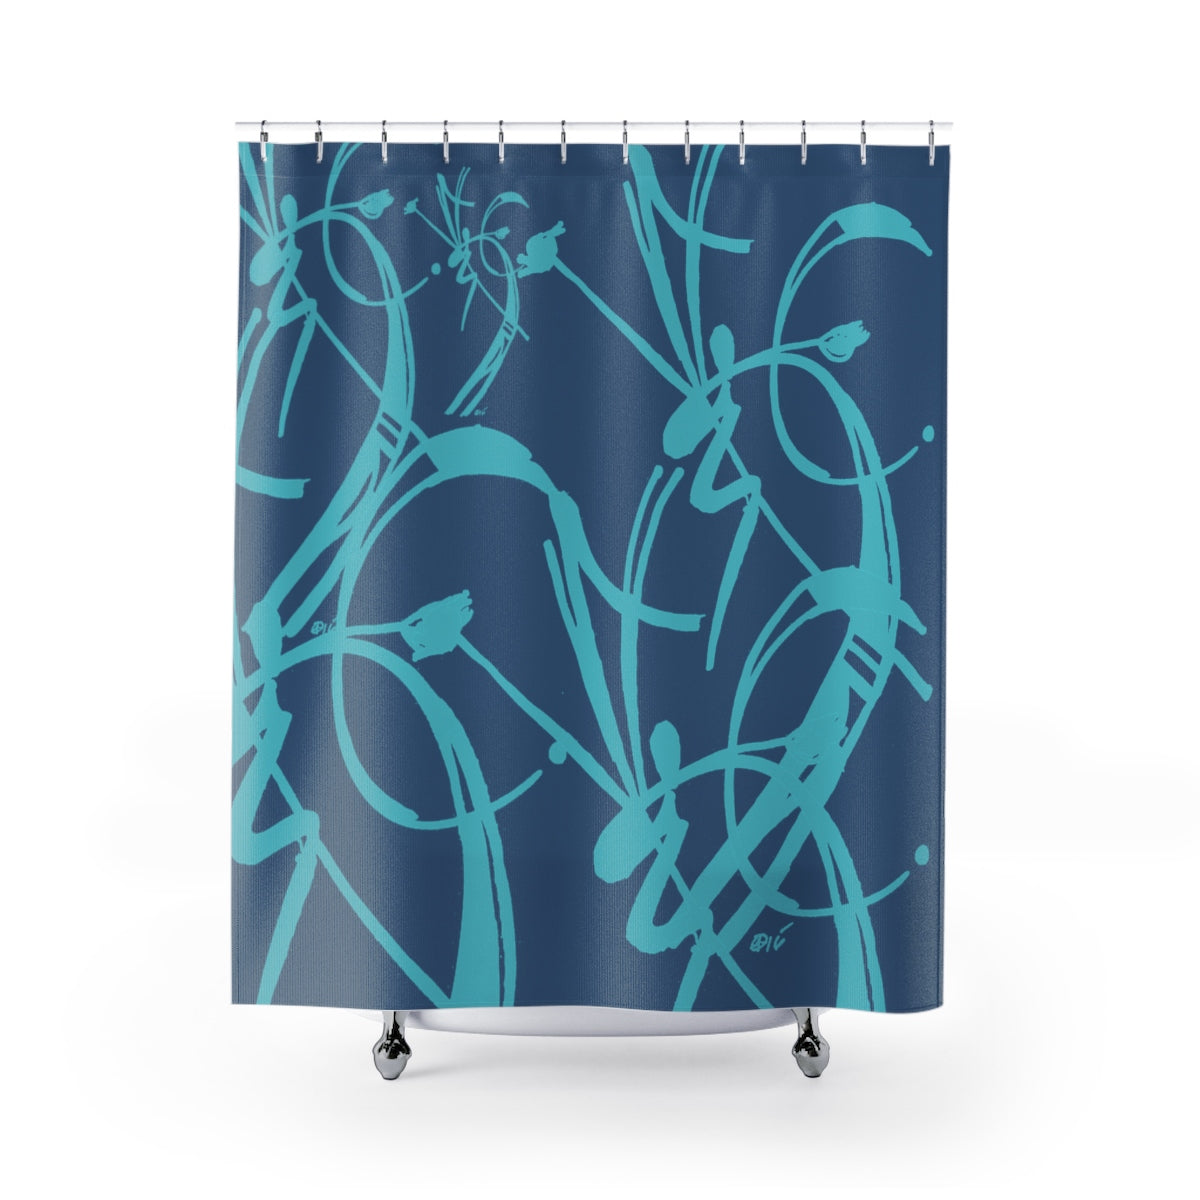 A Prime Posey Shower Curtain Teal on Smoke Blue